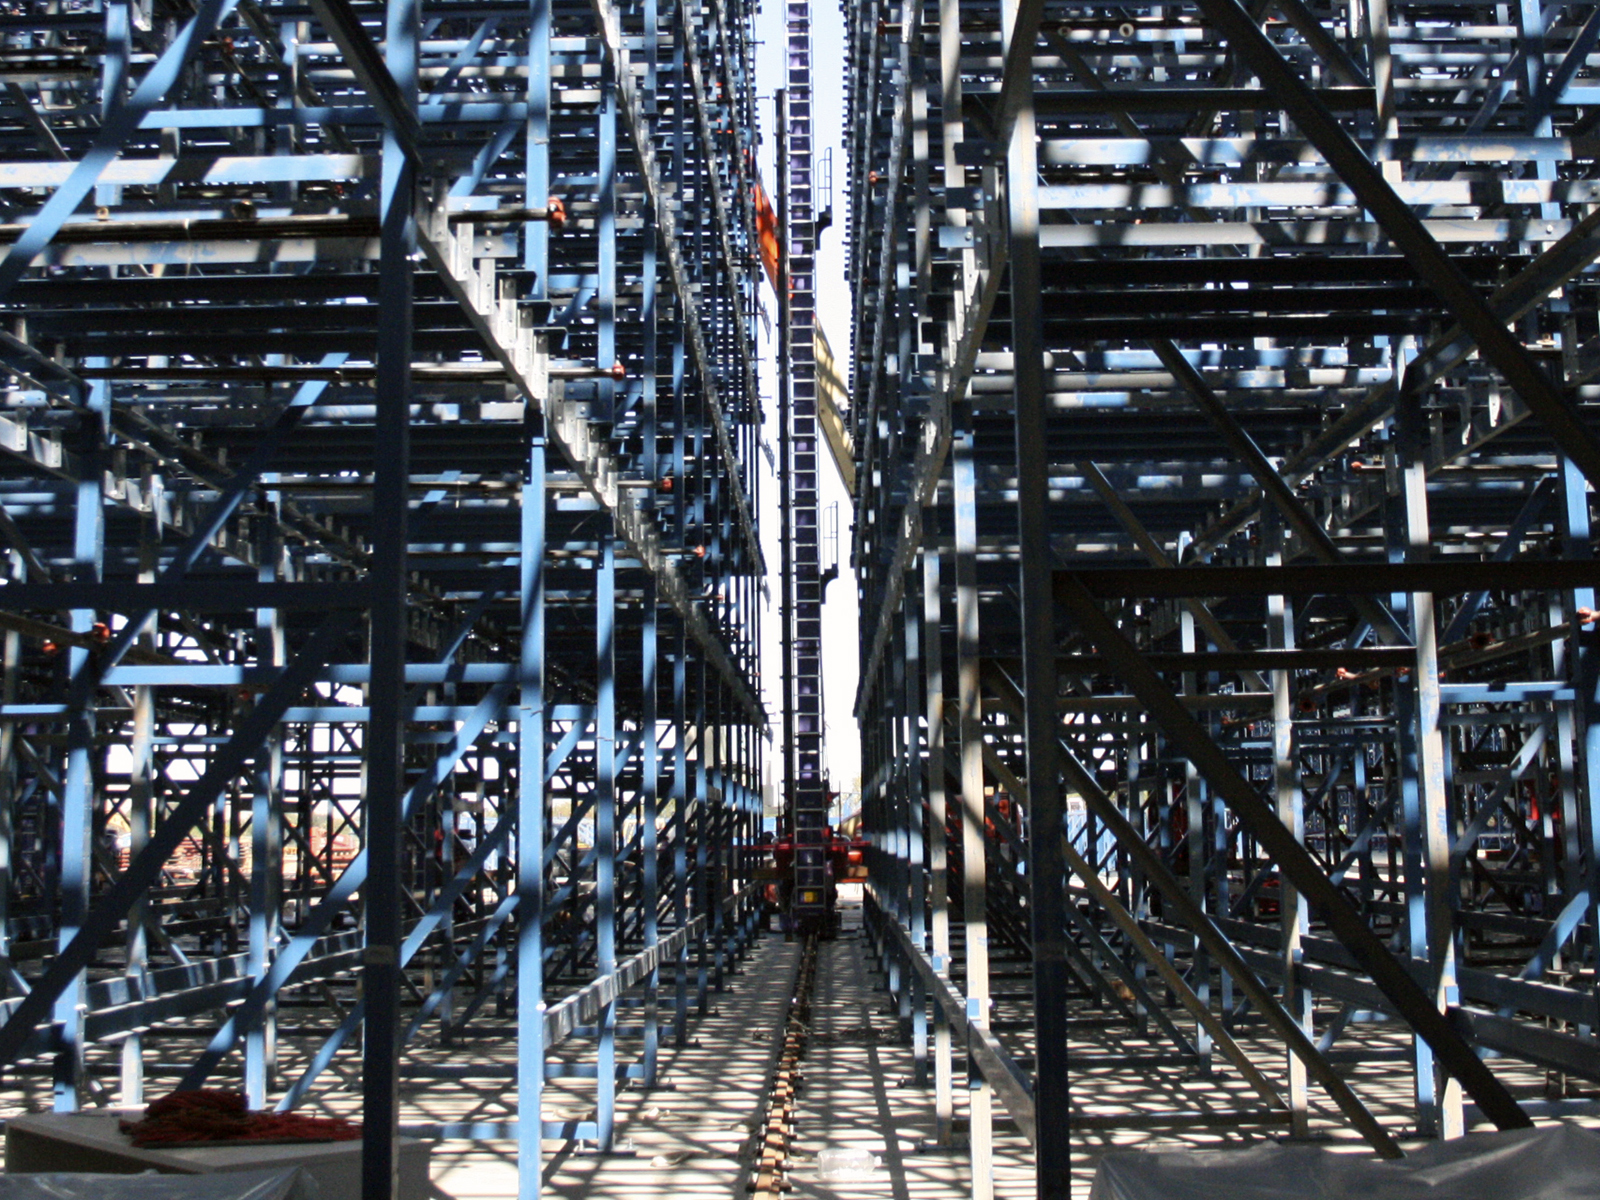 View Down Automated Storage and Retrieval System Aisle